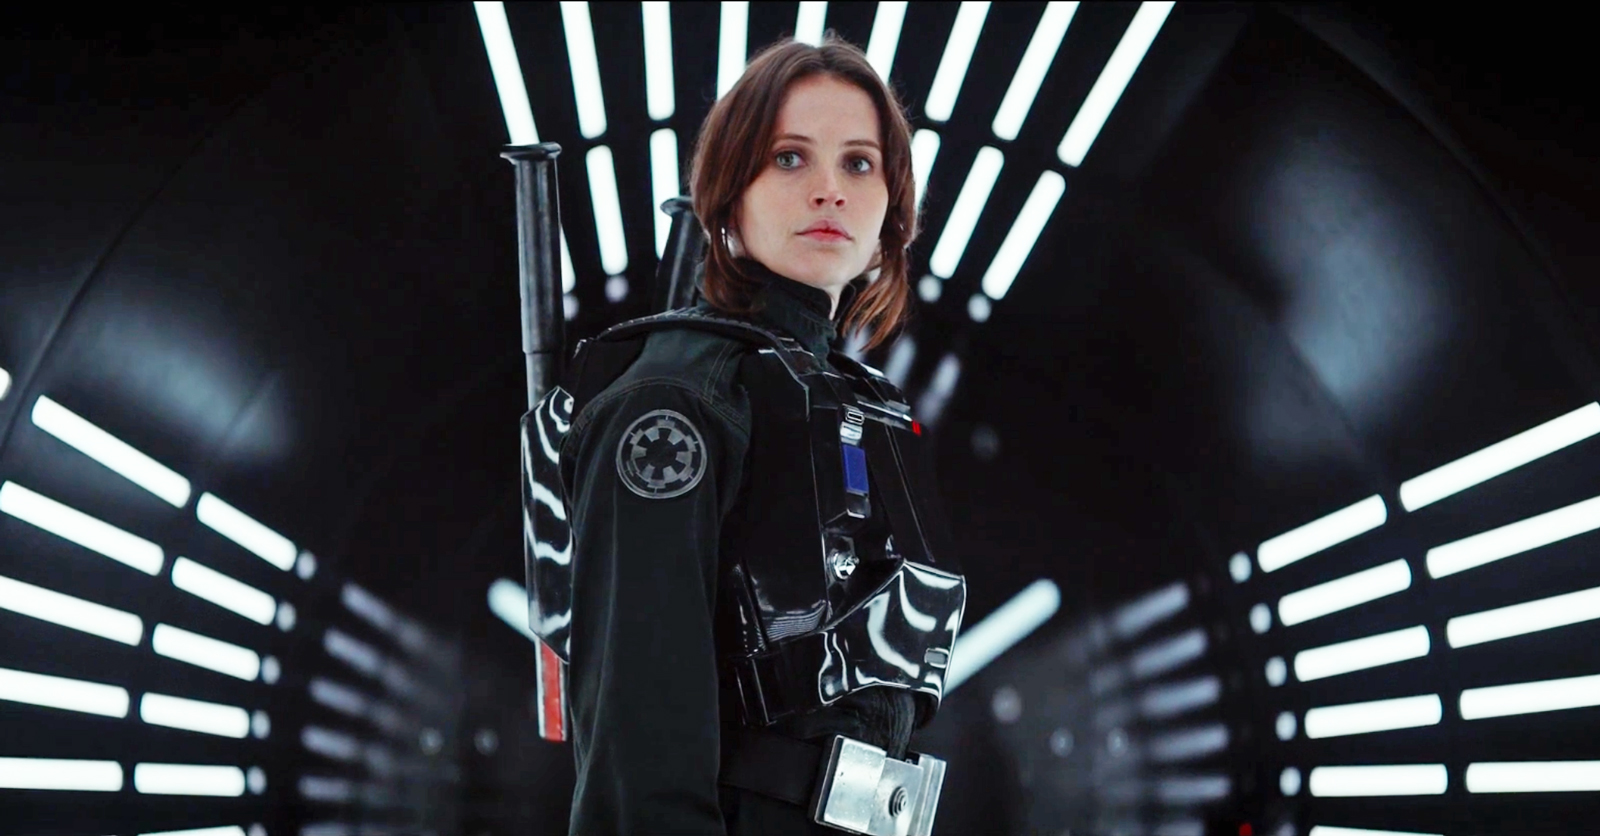 Rogue One Passes $1 Billion at the Box Office